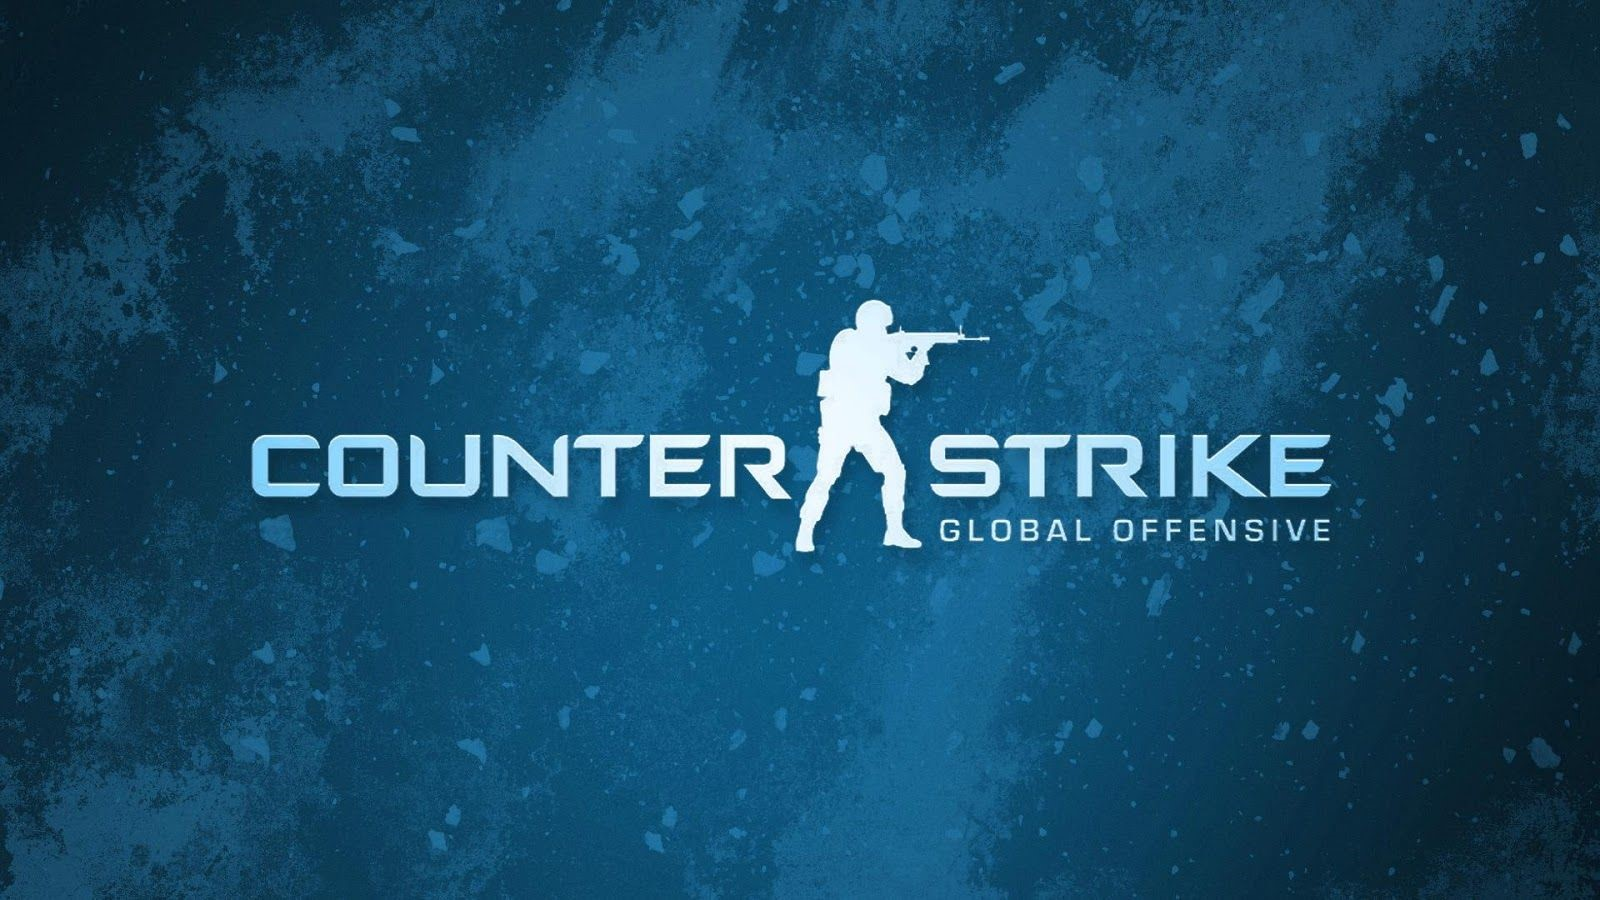 Counter Strike Global Offensive Free Wallpaper